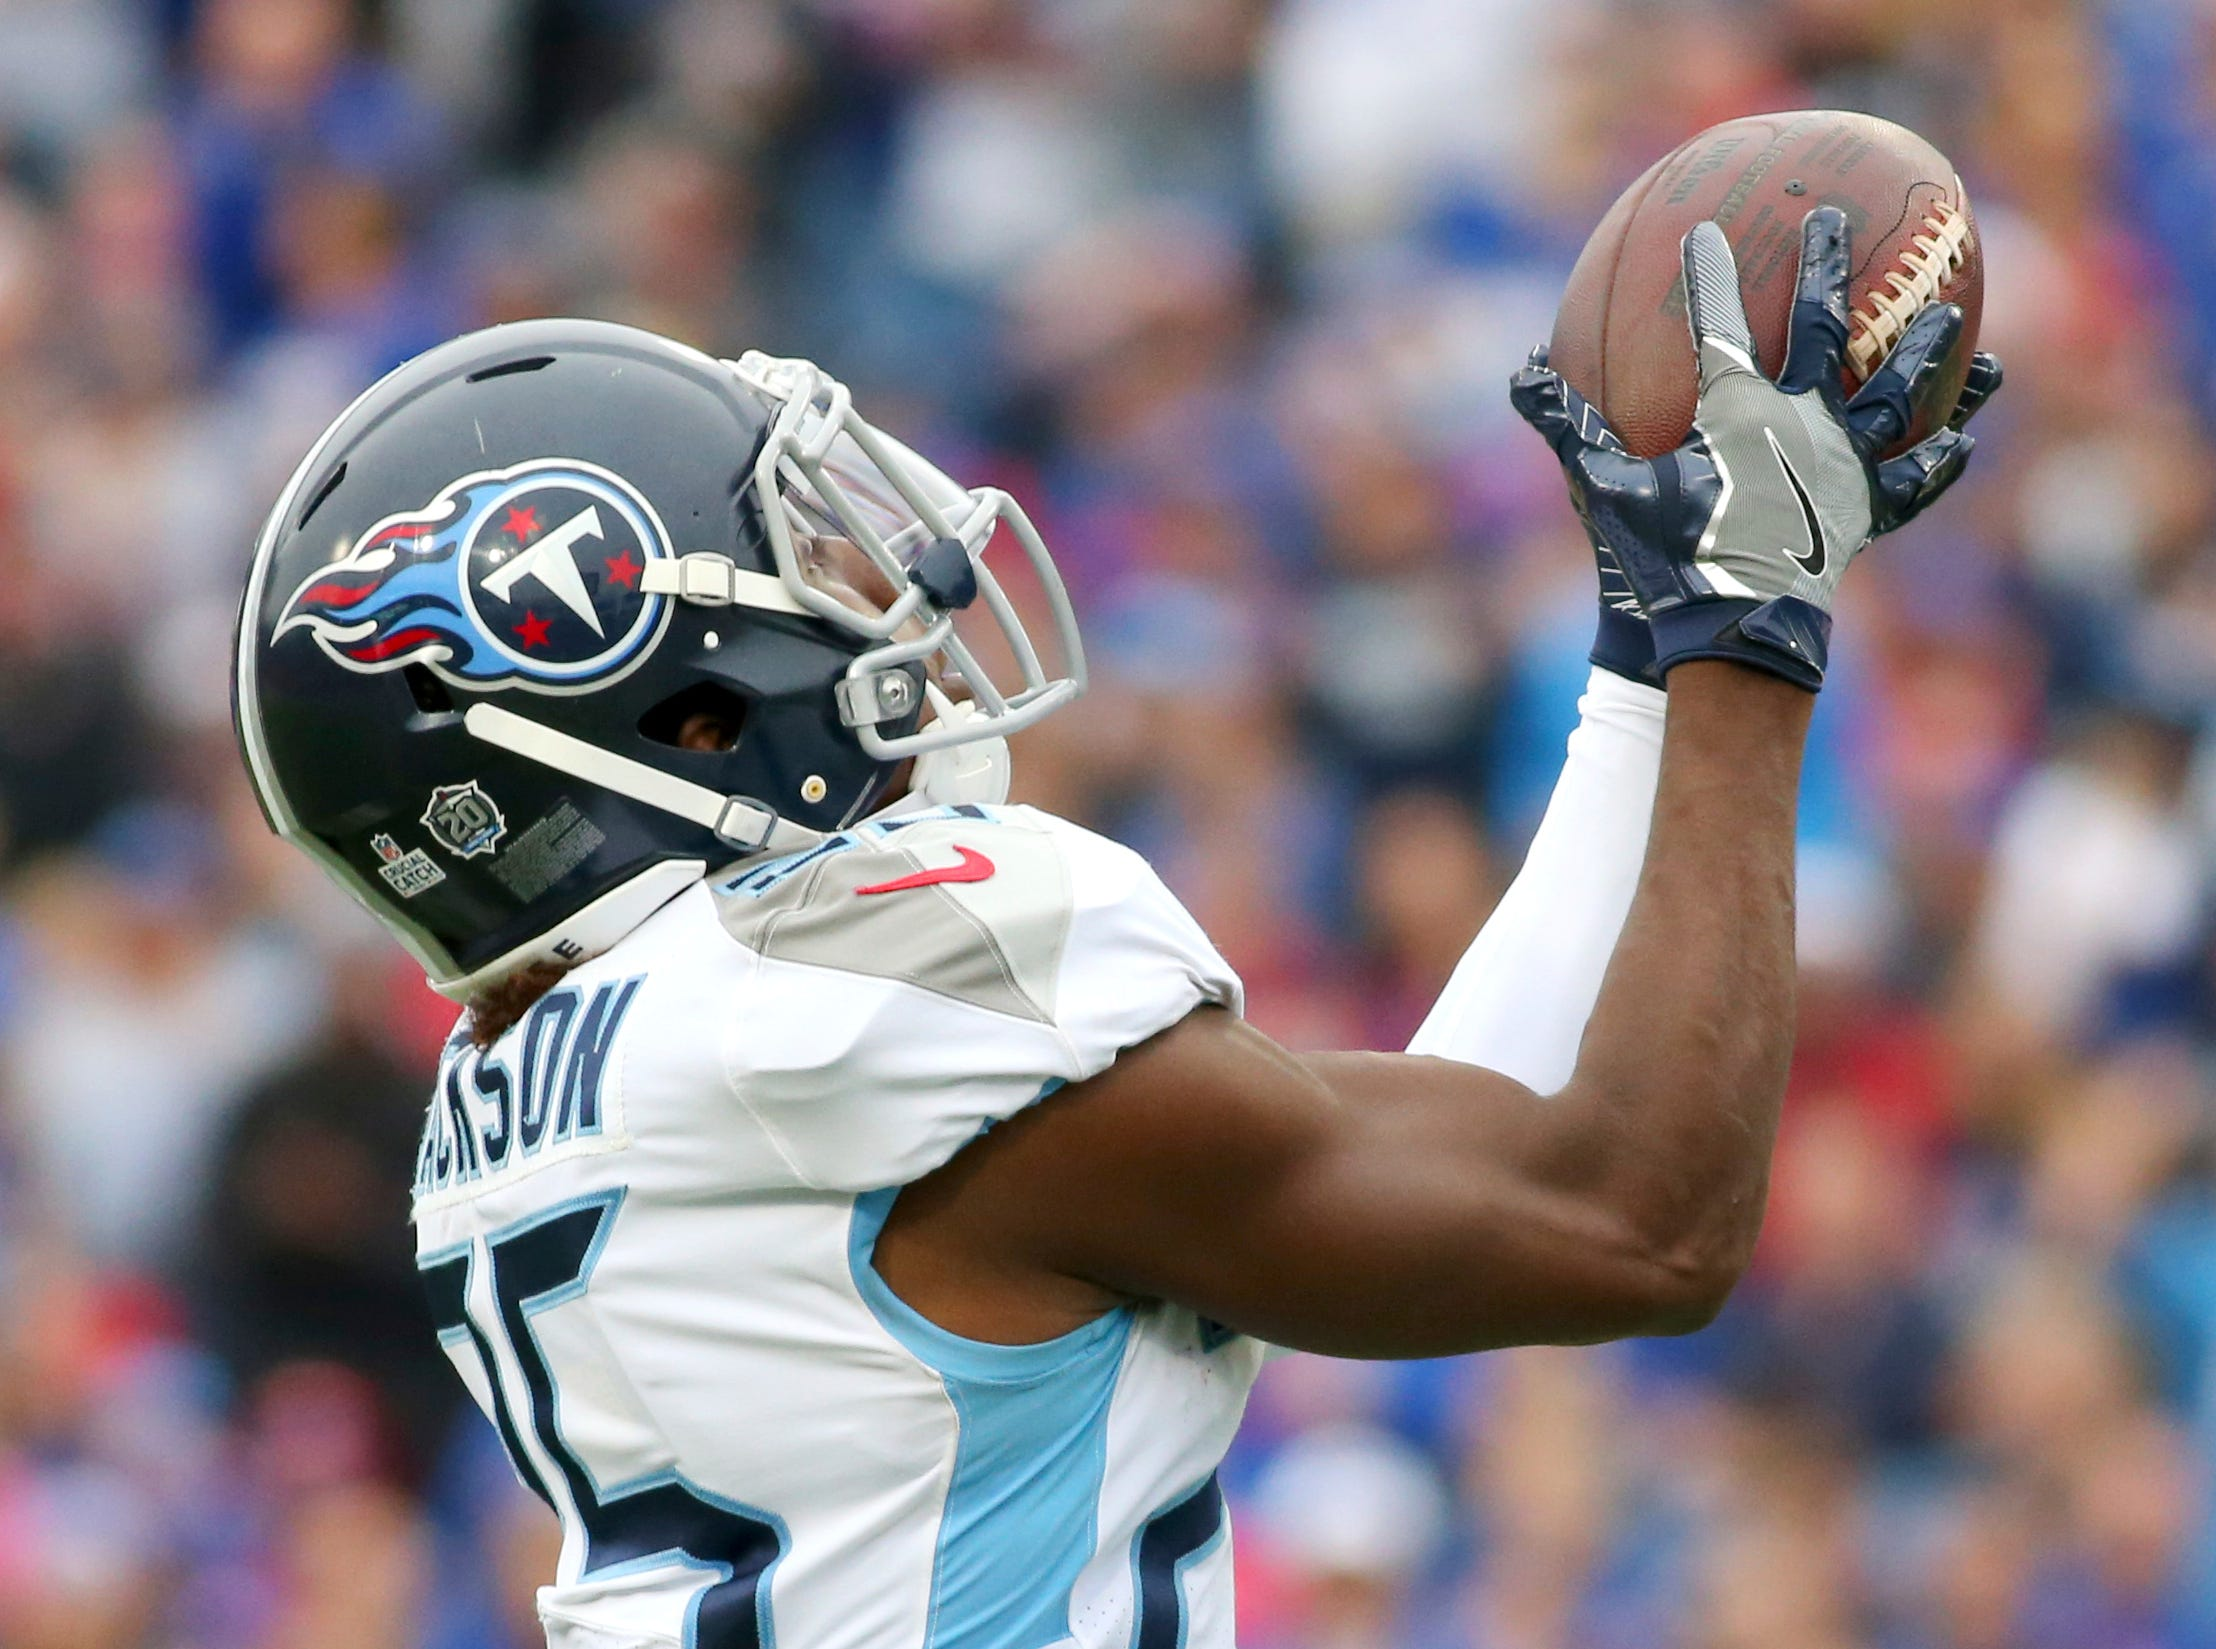 Tennessee Titans cornerback Adoree' Jackson intercepts a pass from Buffalo Bills quarterback Josh Allen during the second half of an NFL football game, Sunday, Oct. 7, 2018, in Orchard Park, N.Y.